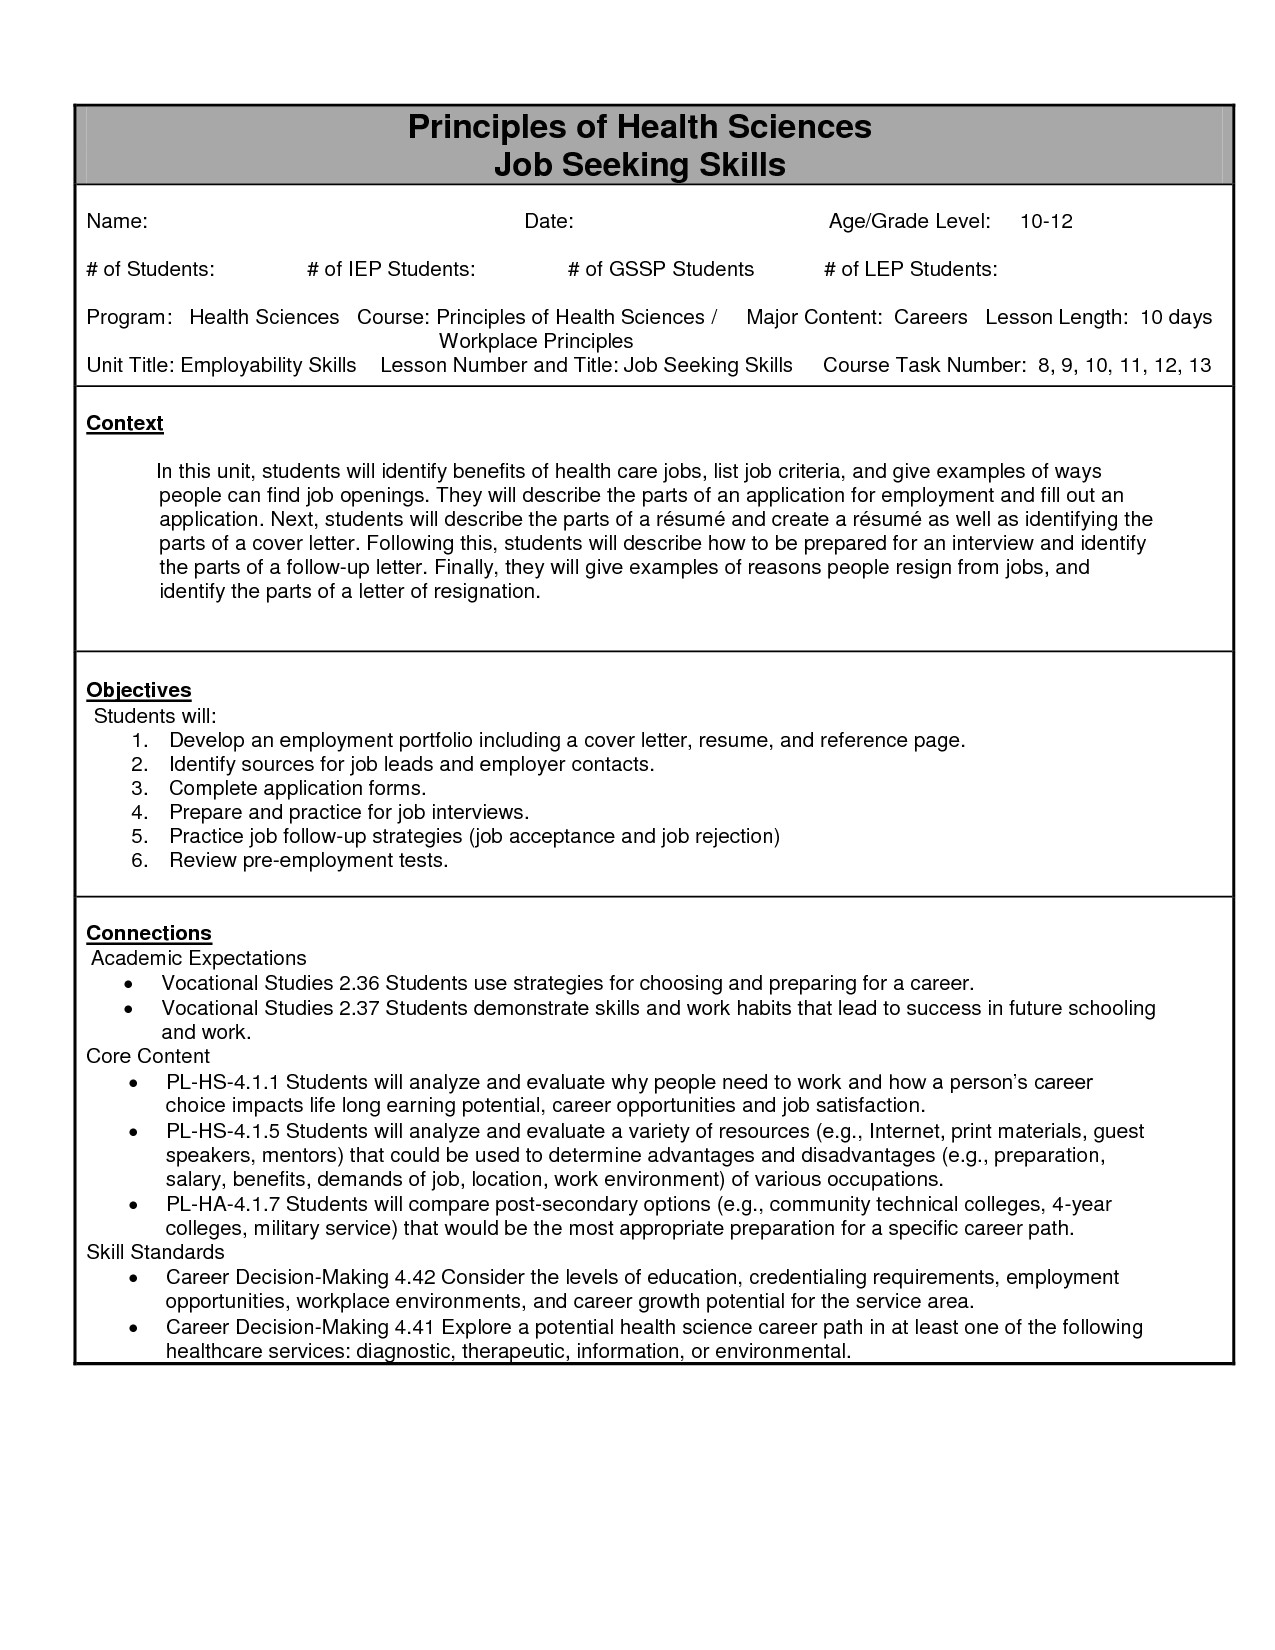 Kipp Lesson Plan Template 7 Best Images Of Kipp Lesson Plan Template Edtpa Lesson